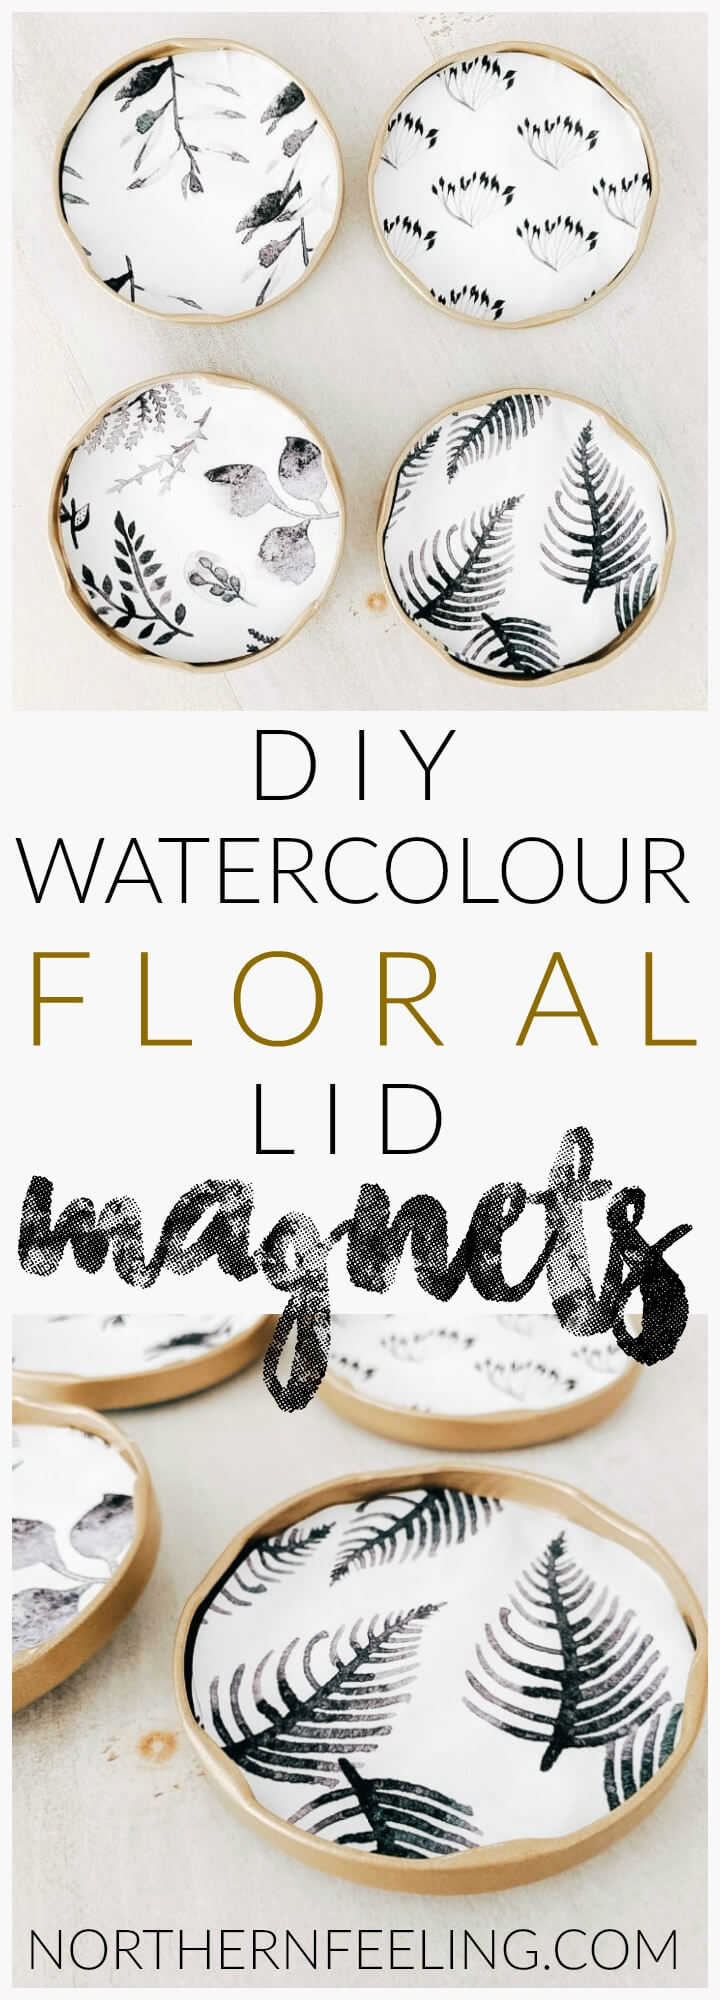 How to make DIY watercolour floral lid magnets // northernfeeling.com